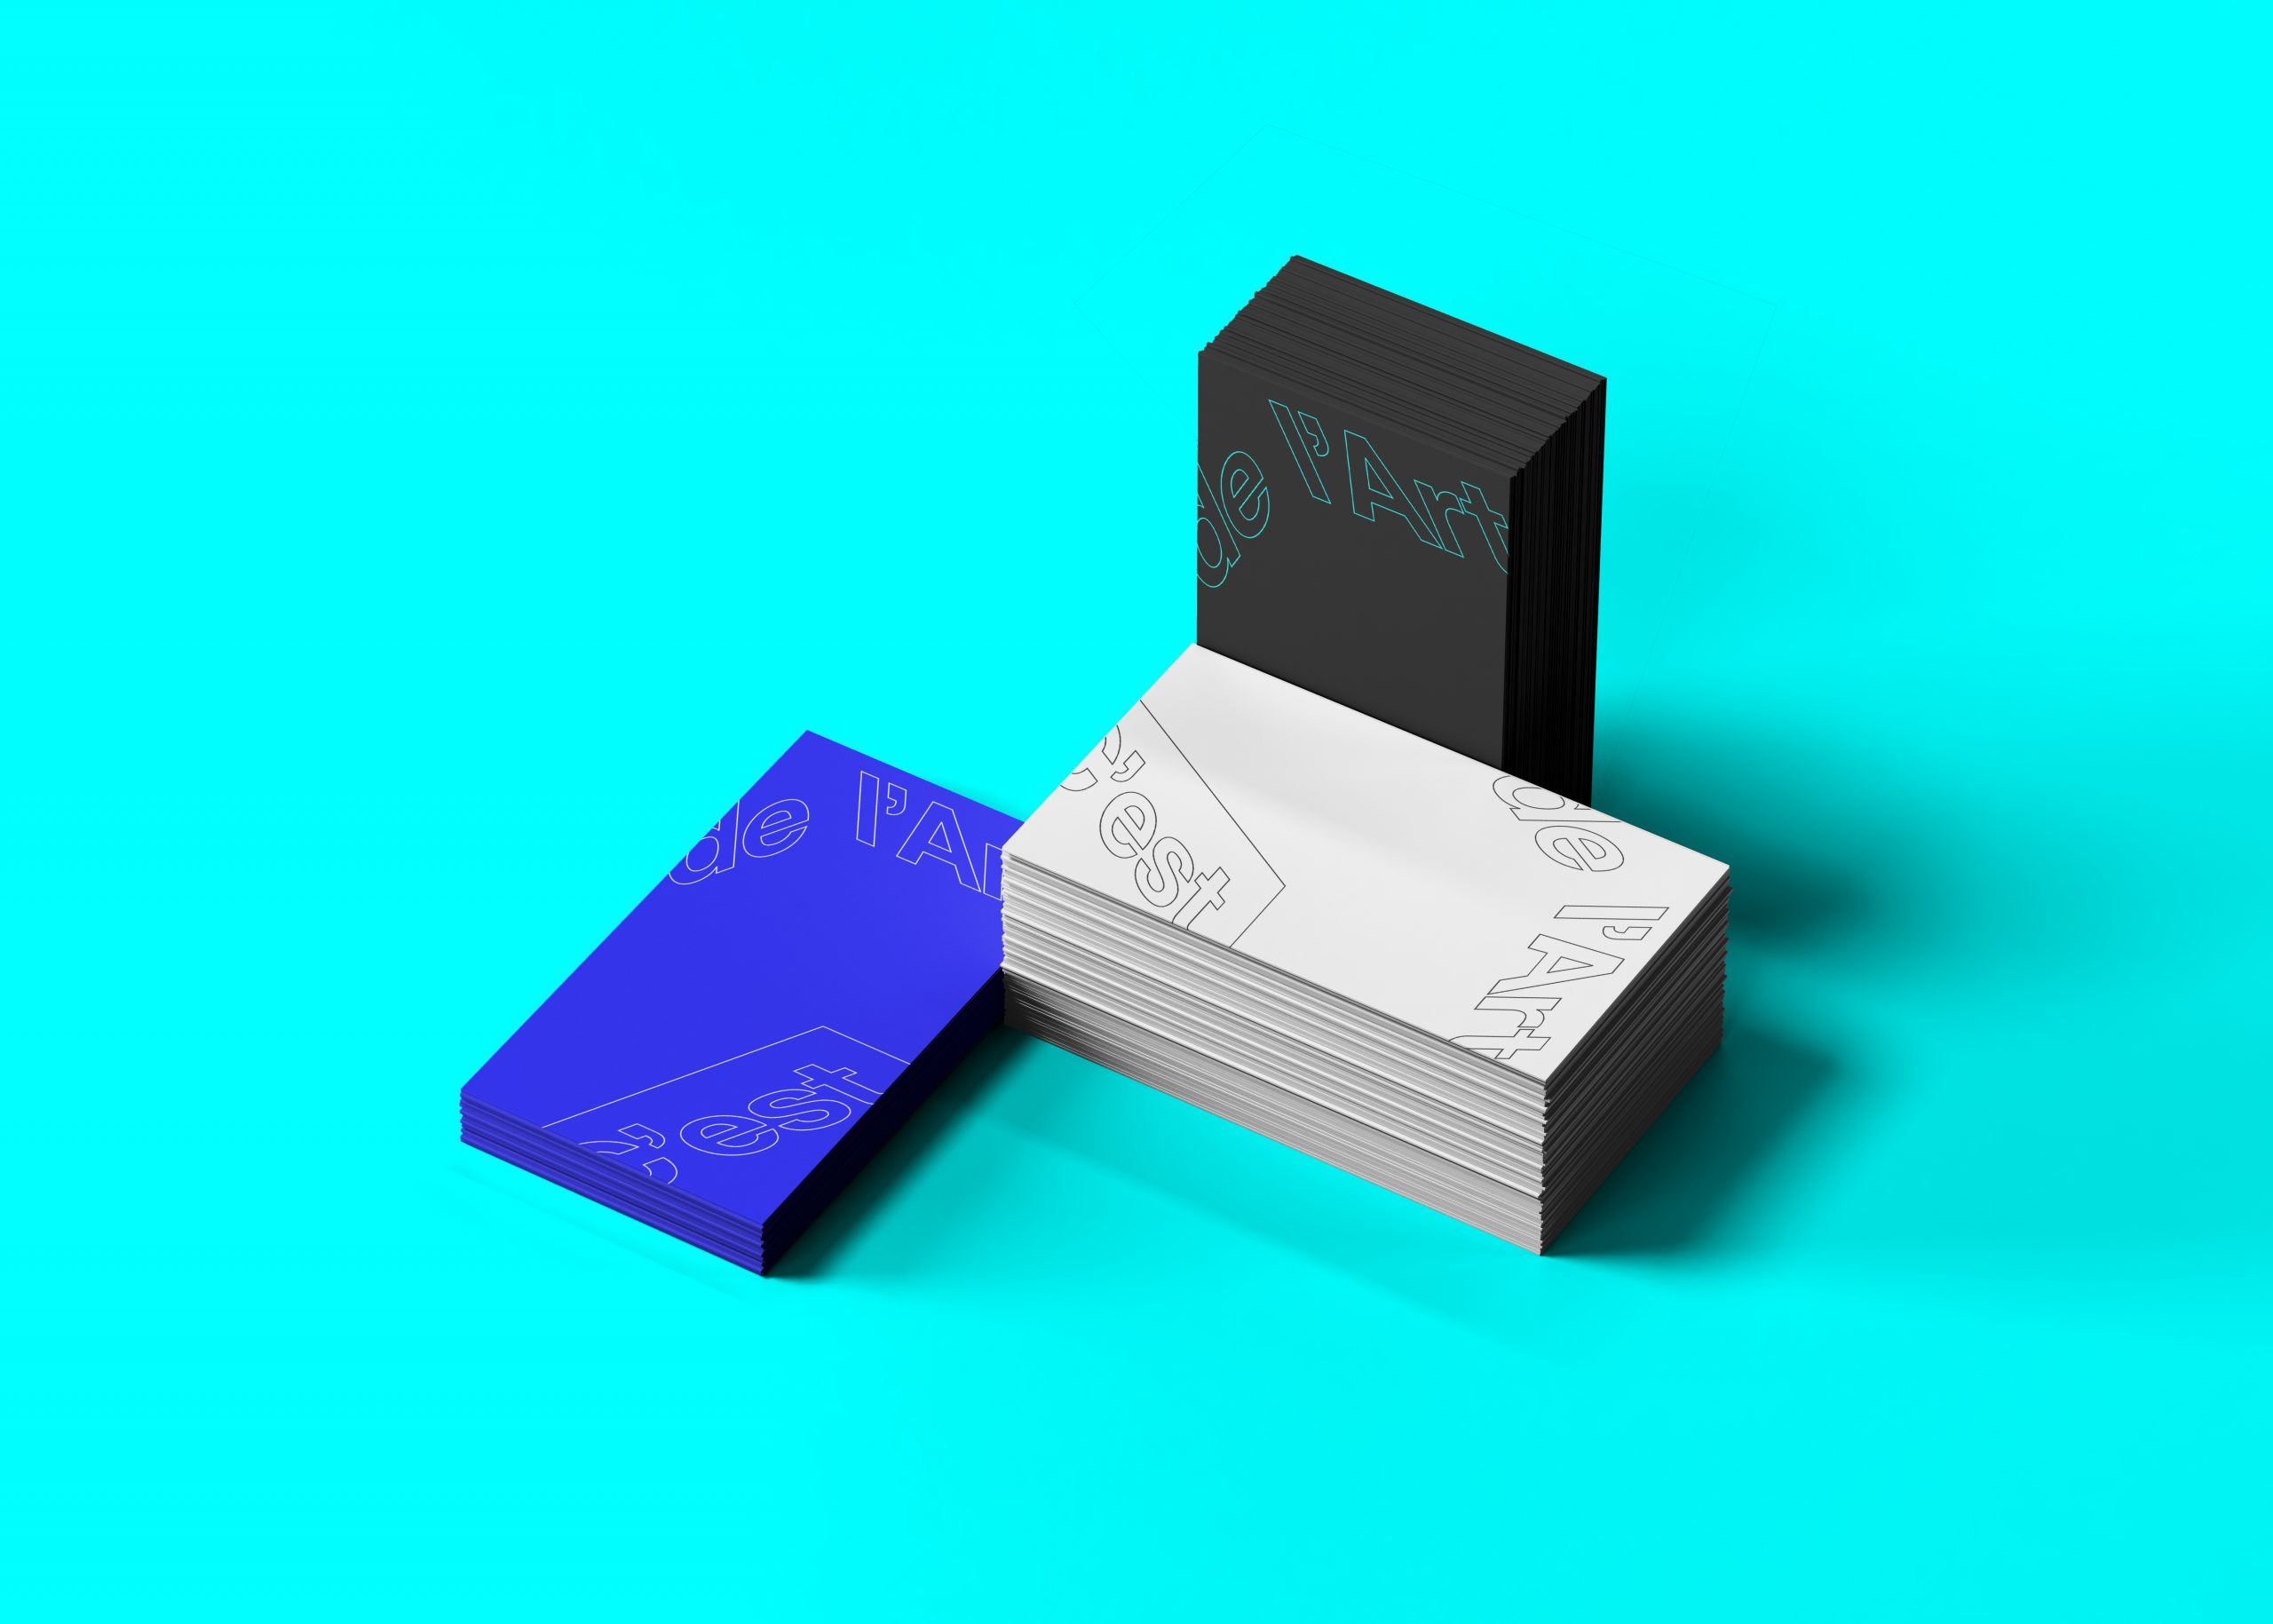 C'est de l'Art business cards